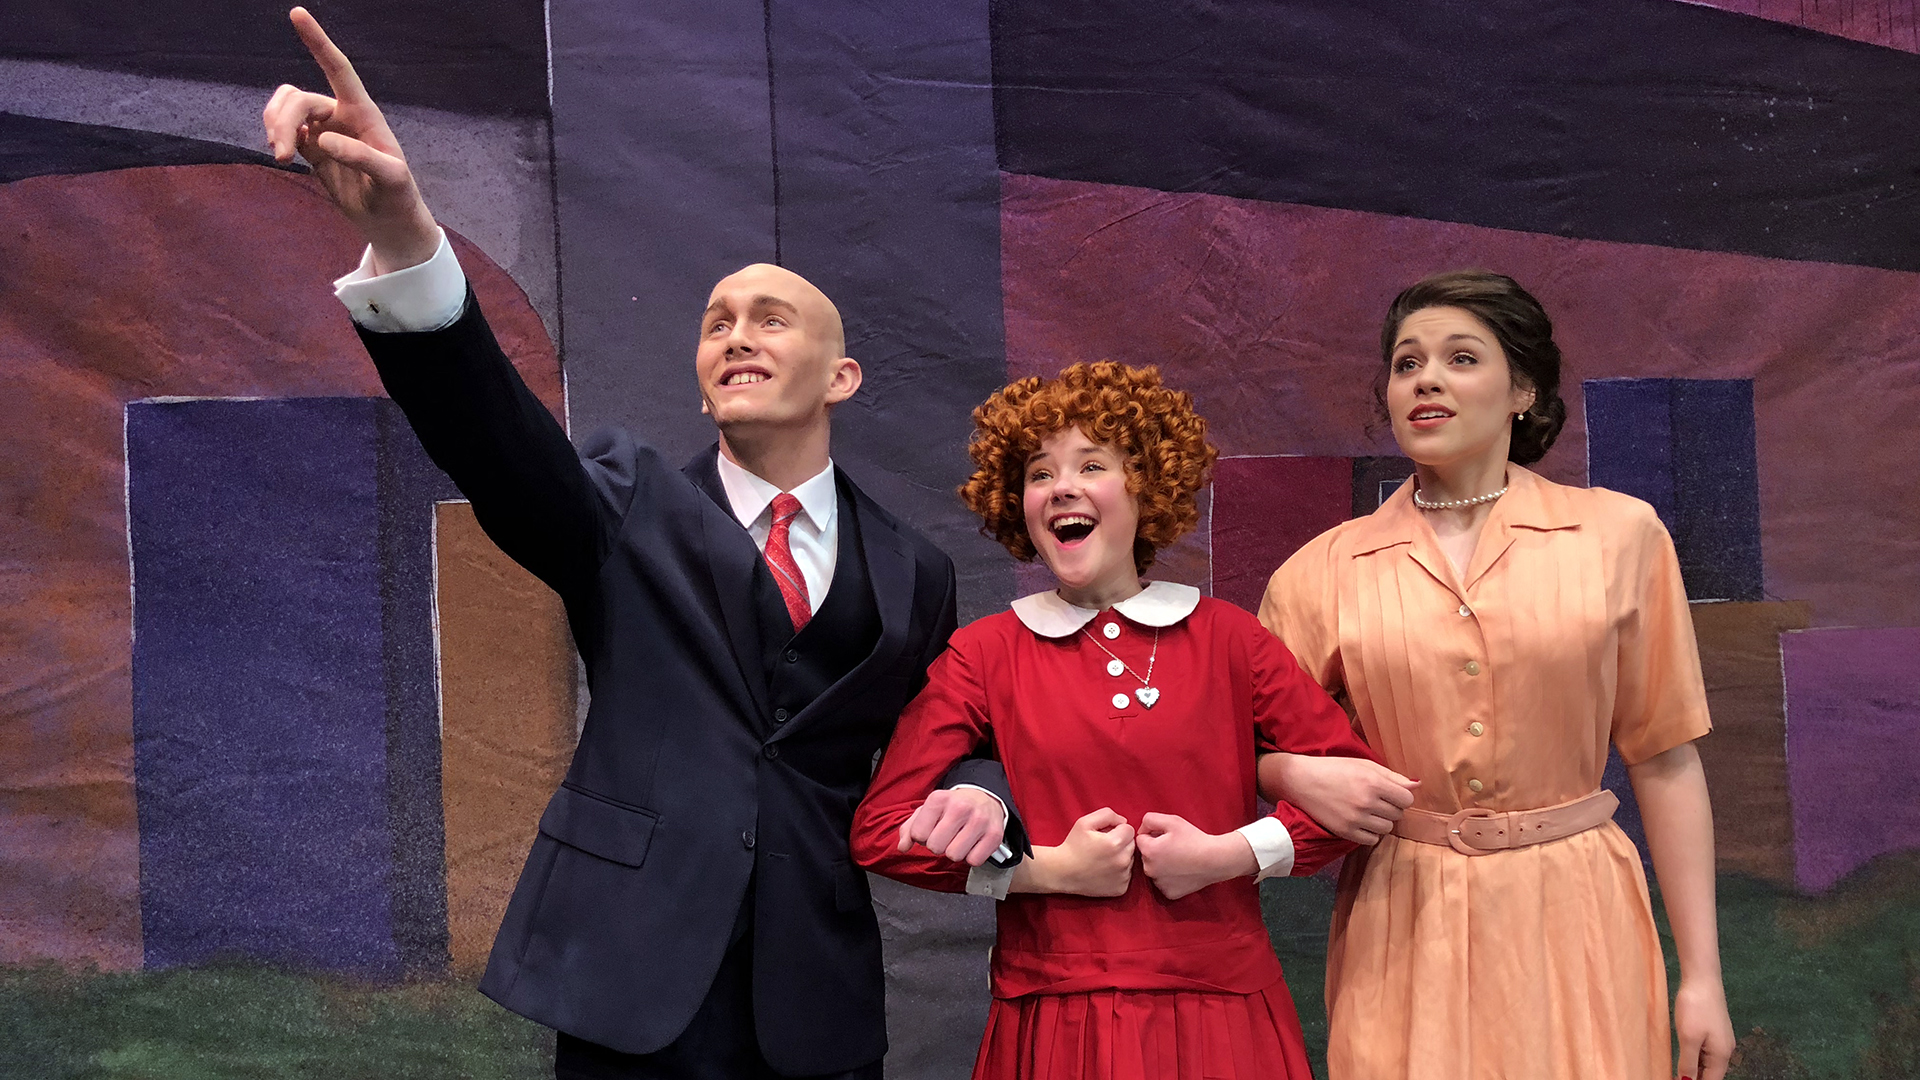 Play Here's Activity Roundup for March 29 to April 5, including Easter fun, 'Annie,' Bulls, more